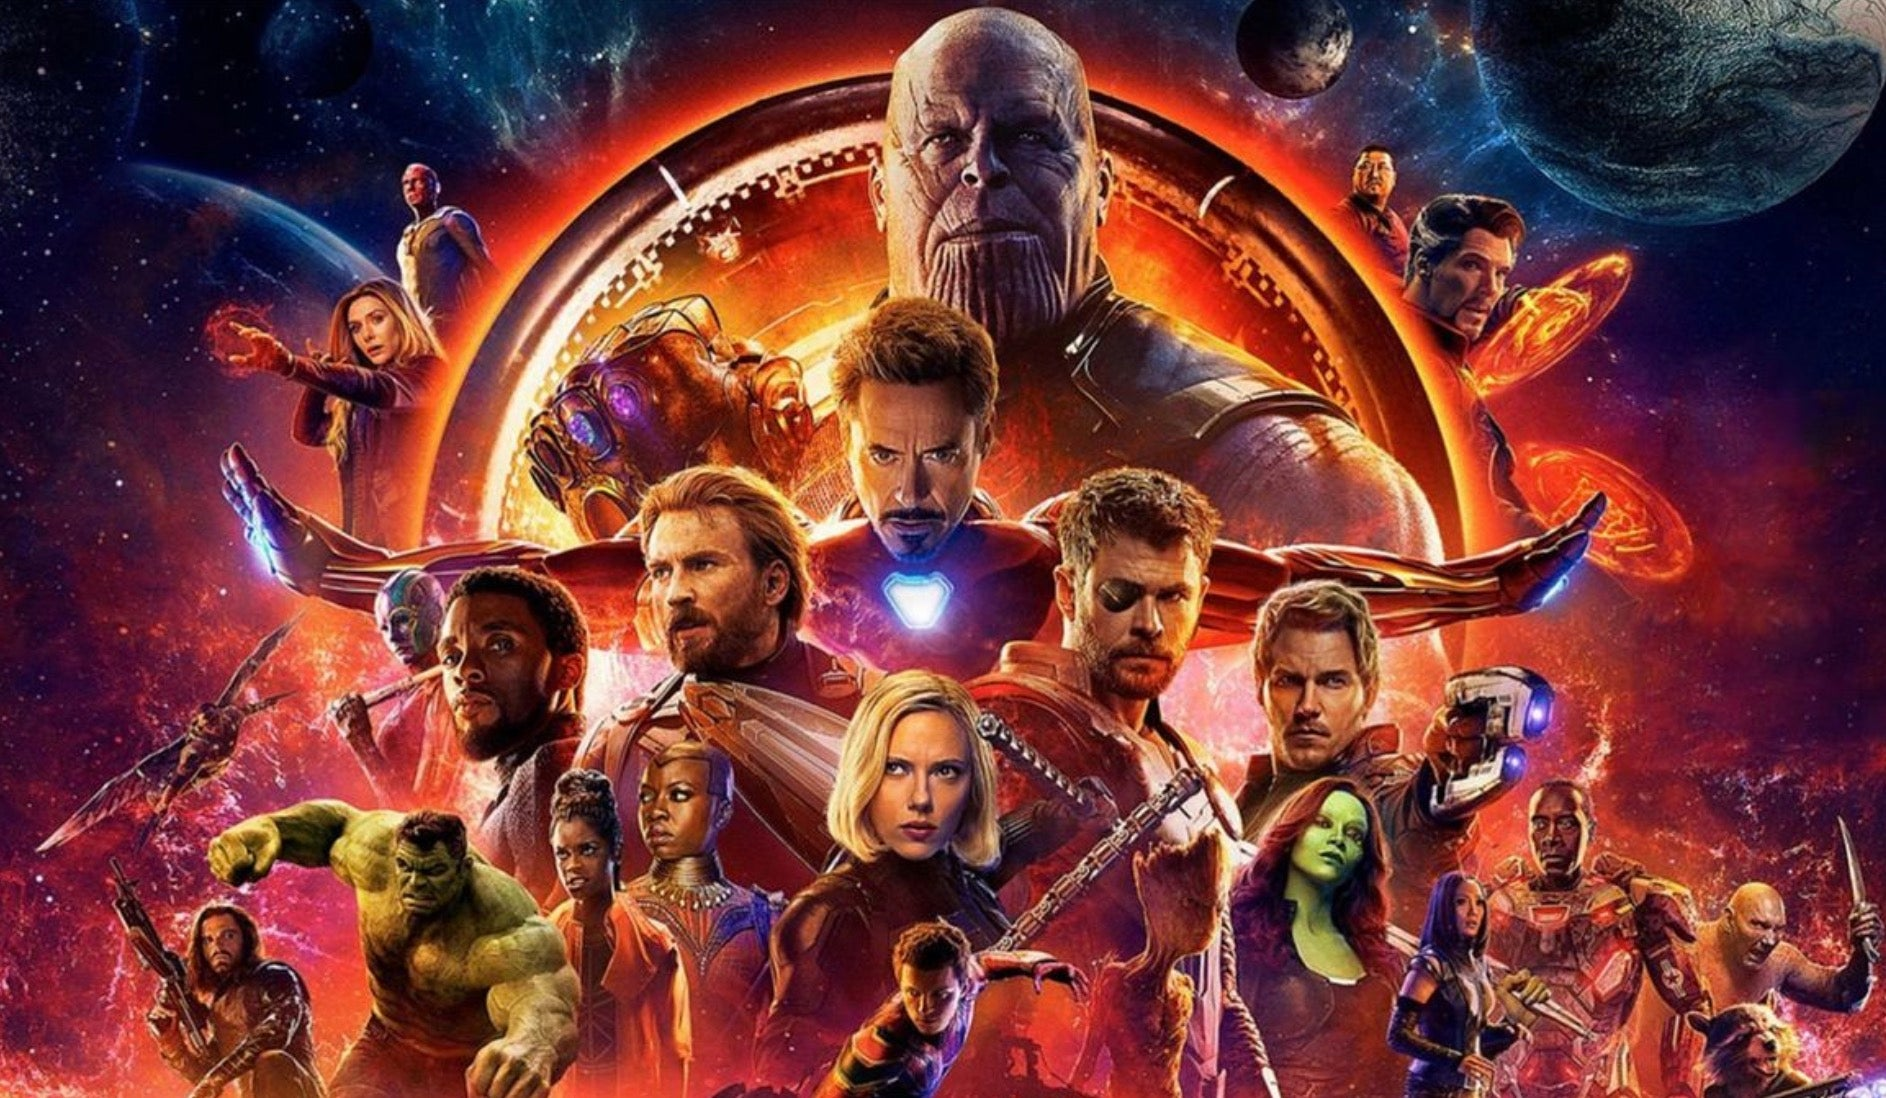 avengers-endgame black-panther captain-america-civil-war captain-america-the-first-avenger captain-america-the-winter-soldier captain-marvel guardians-of-the-galaxy io9 marvel marvel-cinematic-universe marvel-studios spider-man-homecoming the-avengers thor-ragnarok